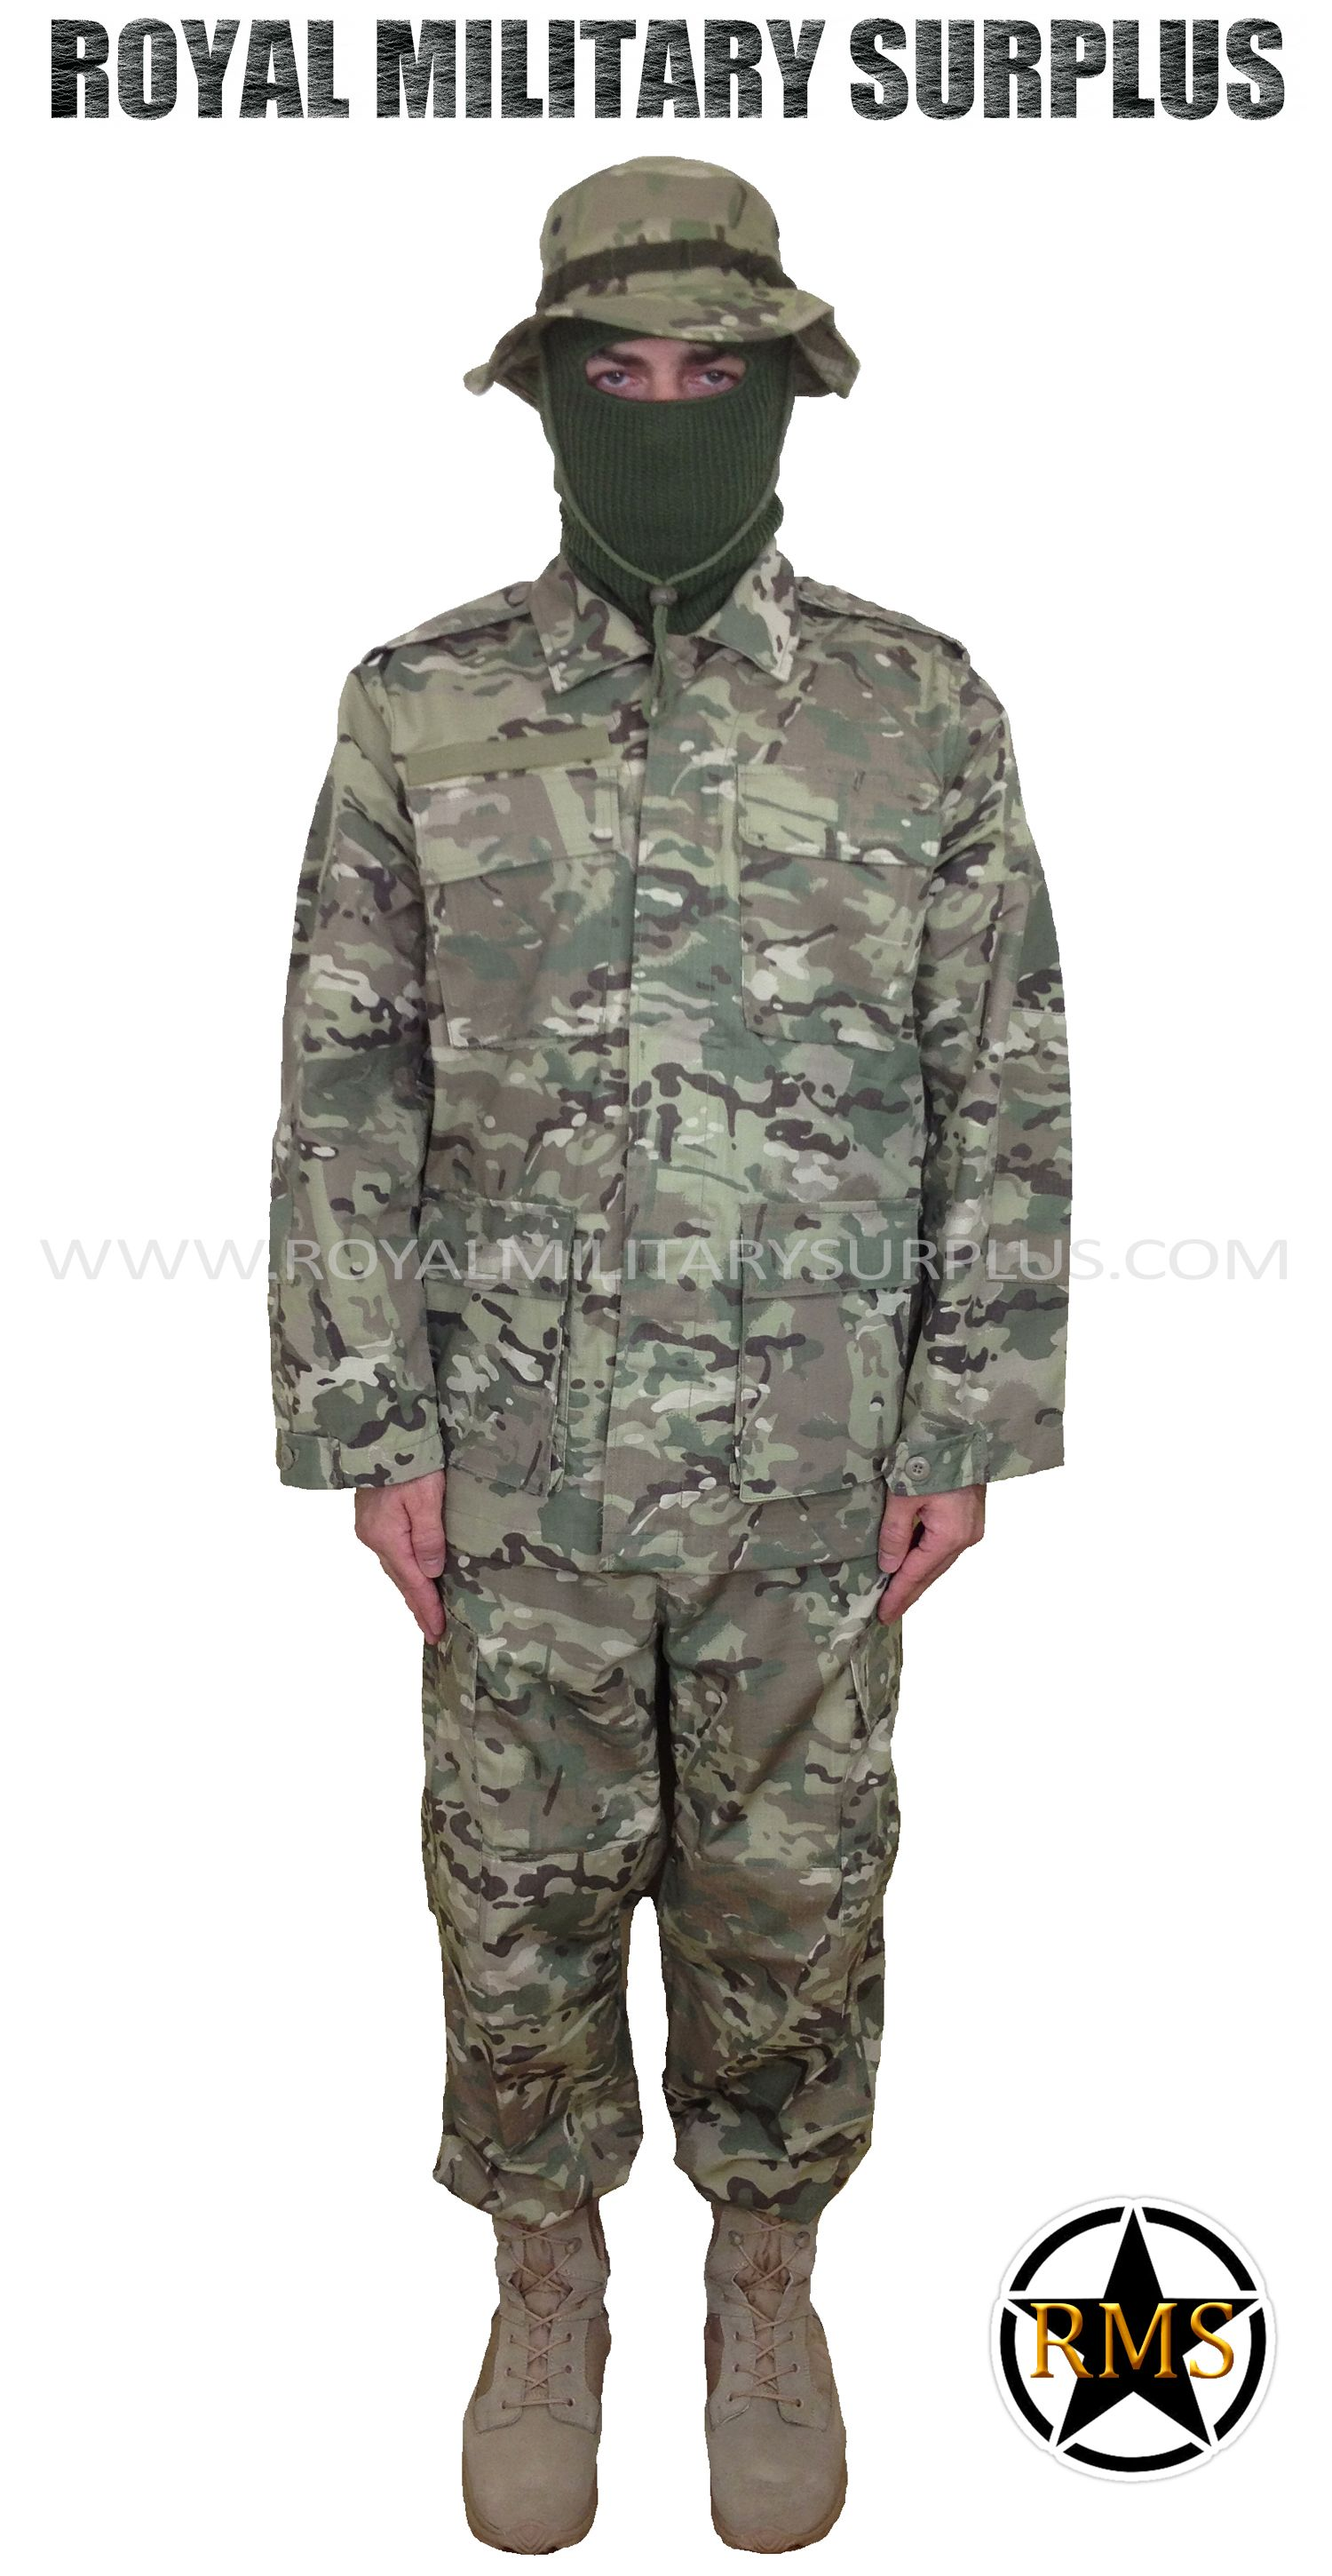 cb24015eca5 This Multicam Military Kit (Trooper Kit) includes the Shirt and Pants in  Multicam Camouflage